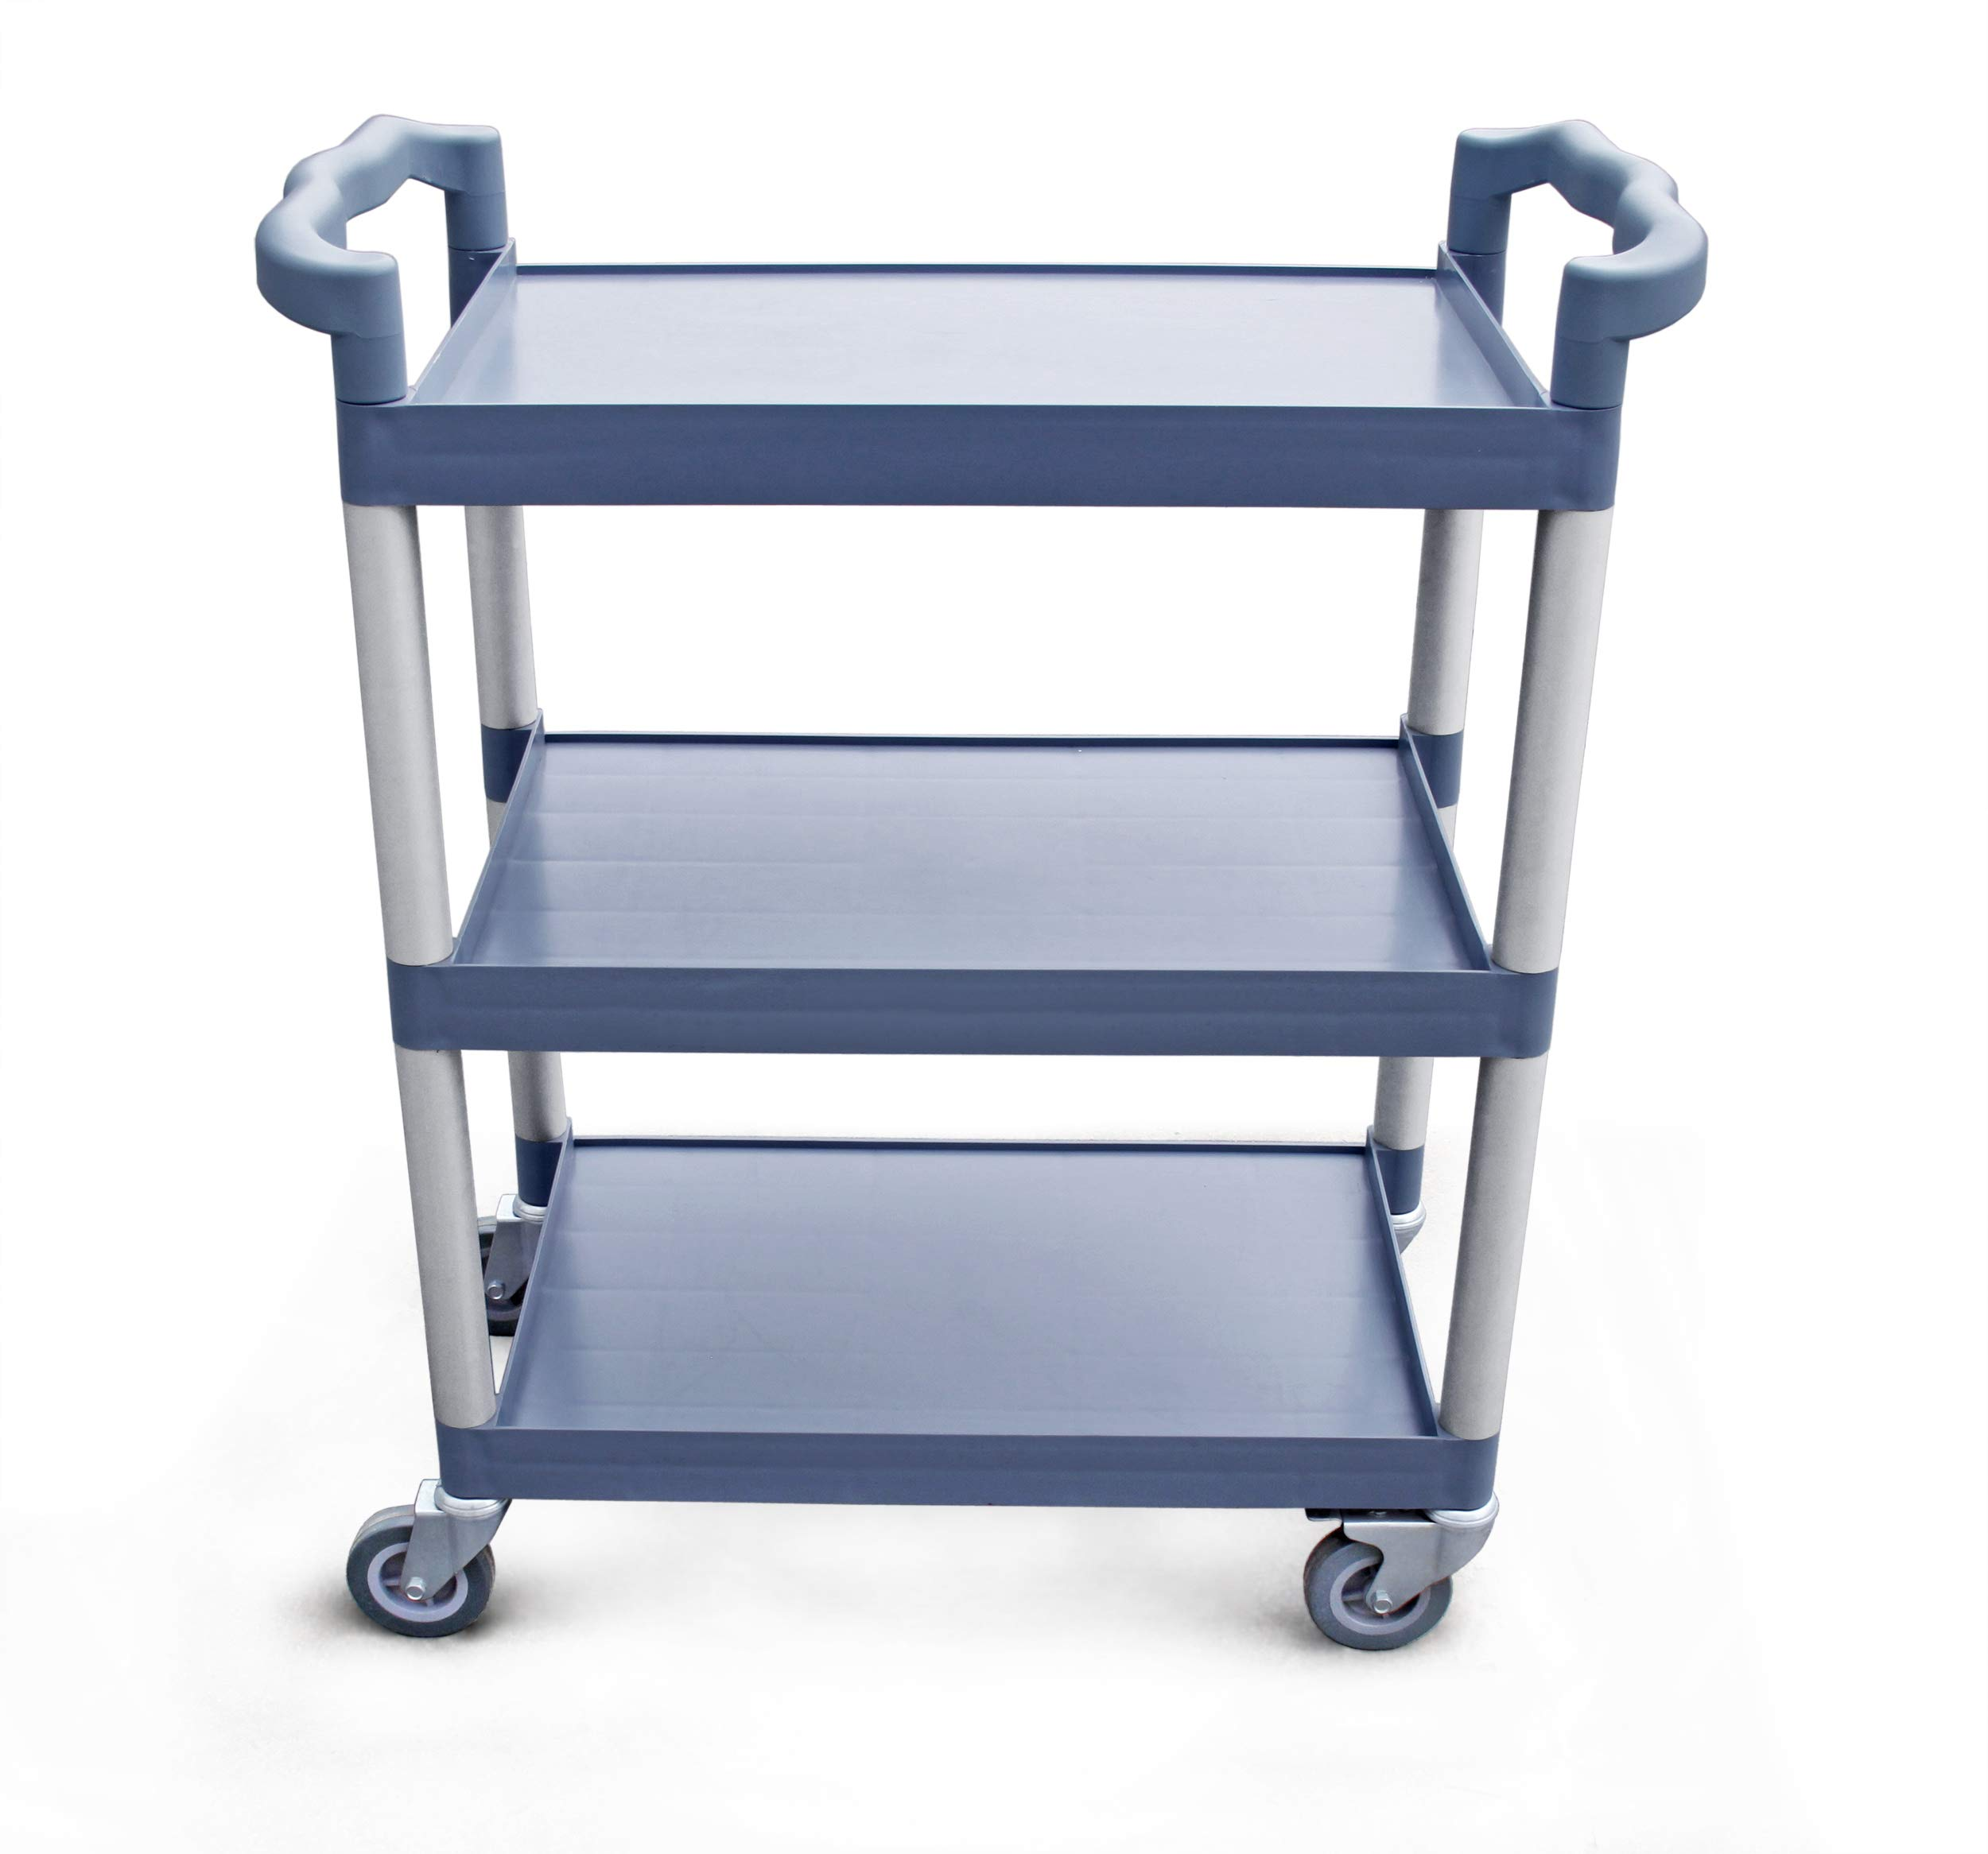 New Star Foodservice 54569 Heavy Duty Utility Cart Bus Cart 350 lbs Load 3 Tier Cart, 42-1/2x19-1/2x38-1/2, Gray by New Star Foodservice